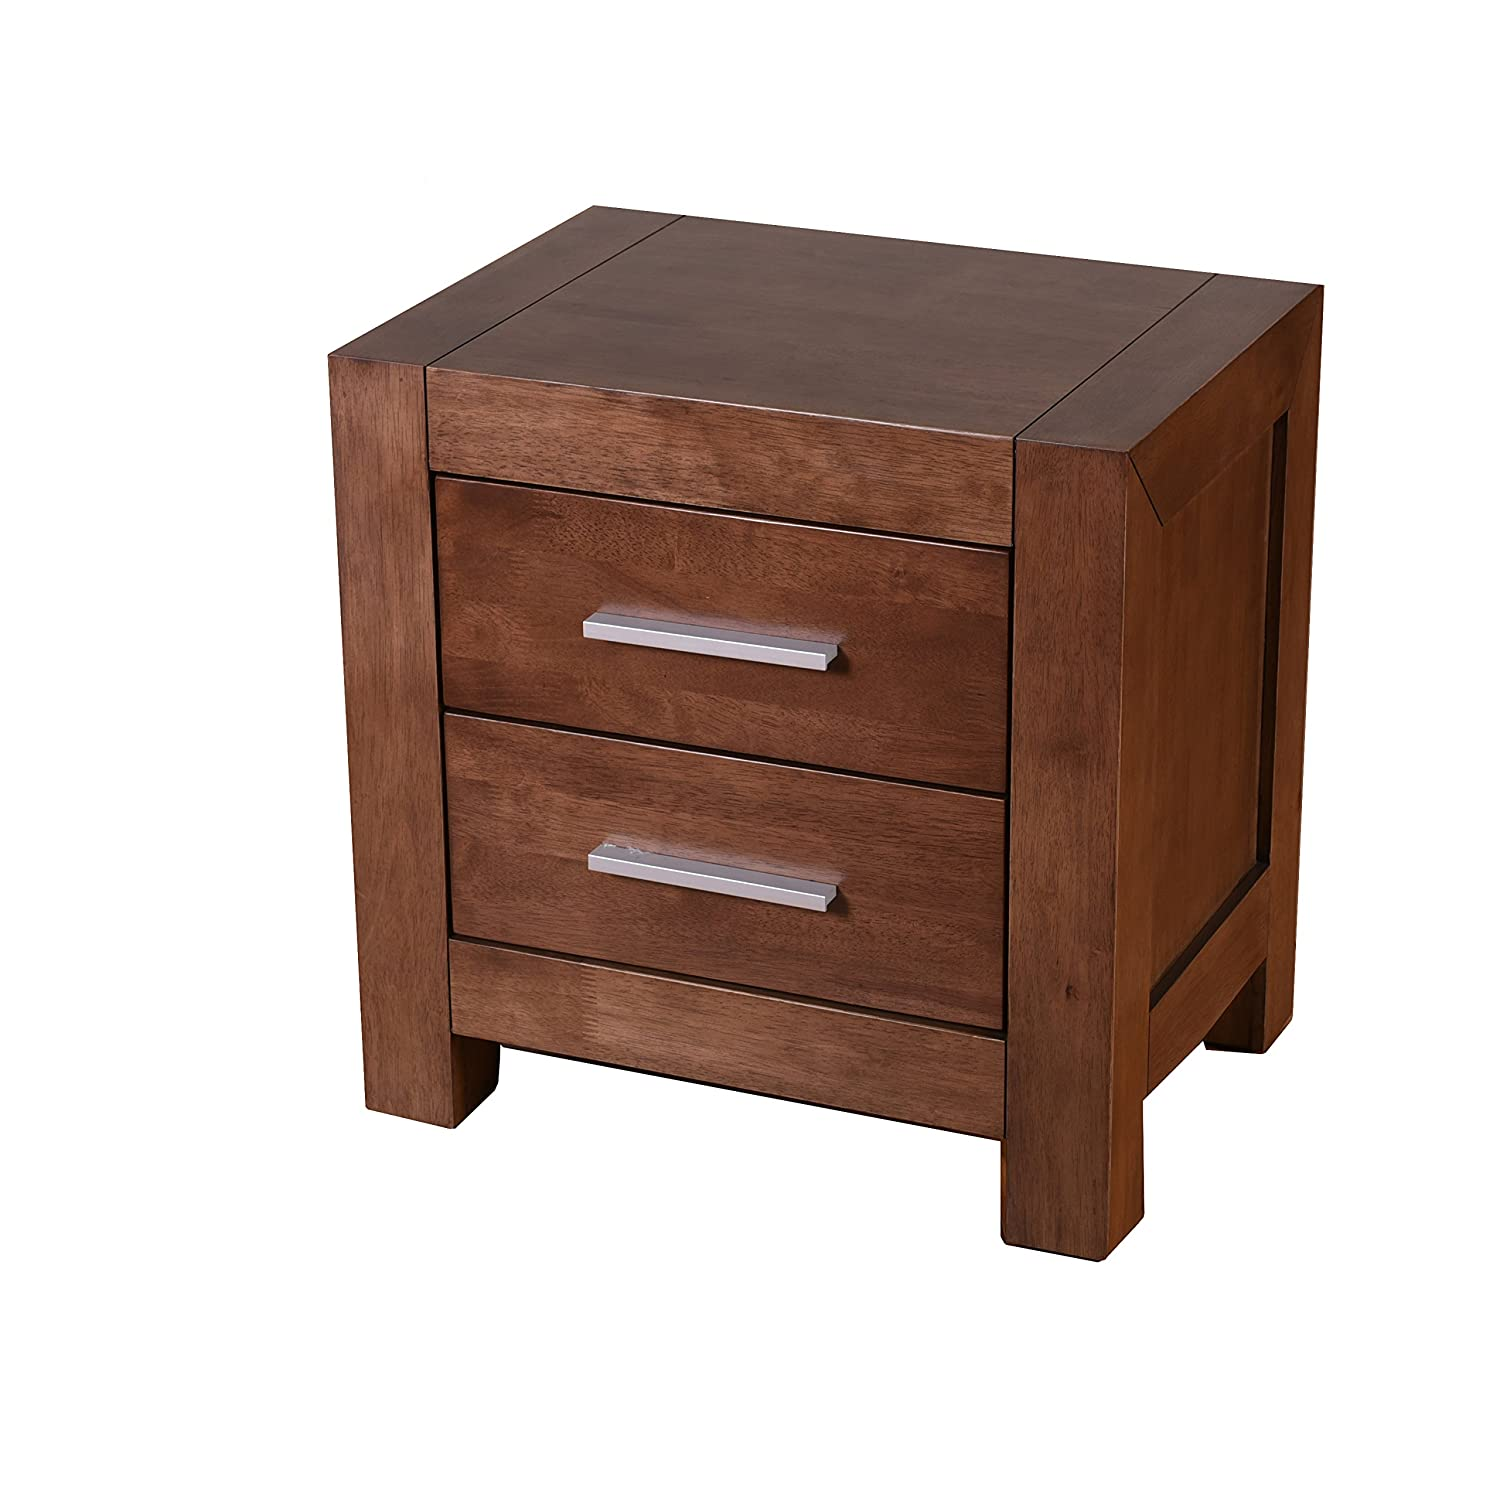 Midtown Concept Michigan Mid-Century Nightstand, Cocoa, 2 Drawer